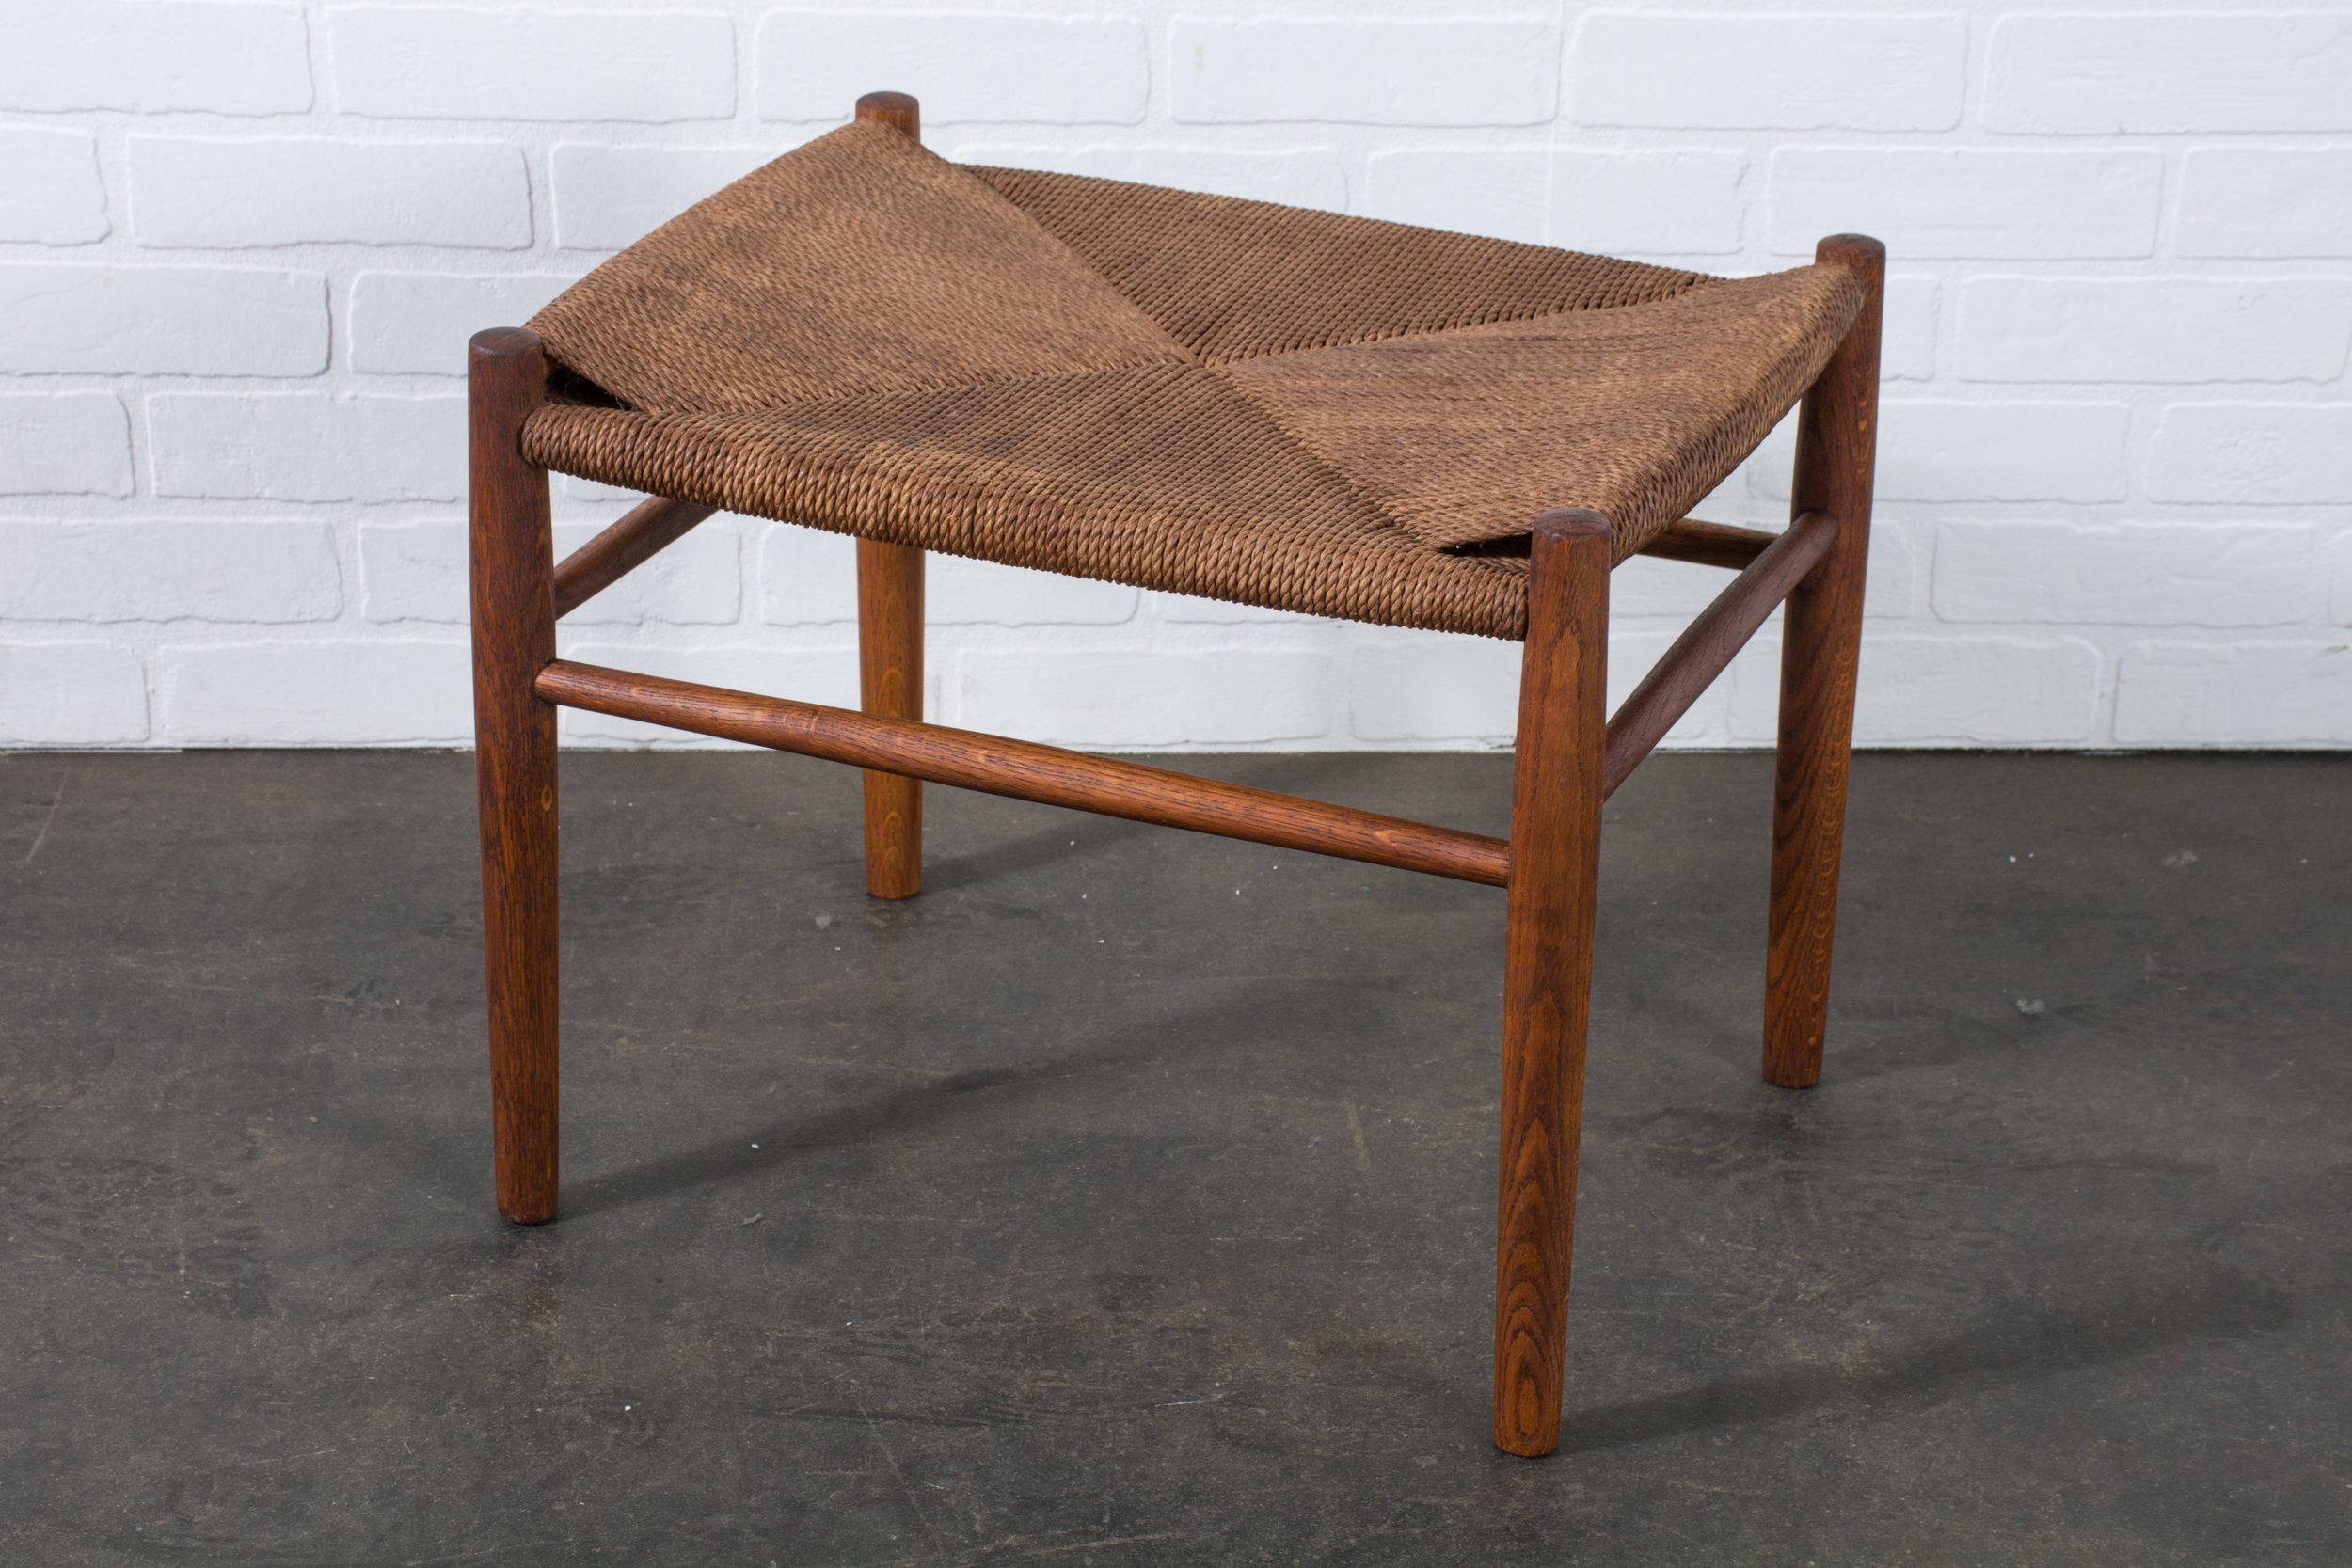 Copy of Vintage Mid-Century Hans Wegner Stool or Ottoman